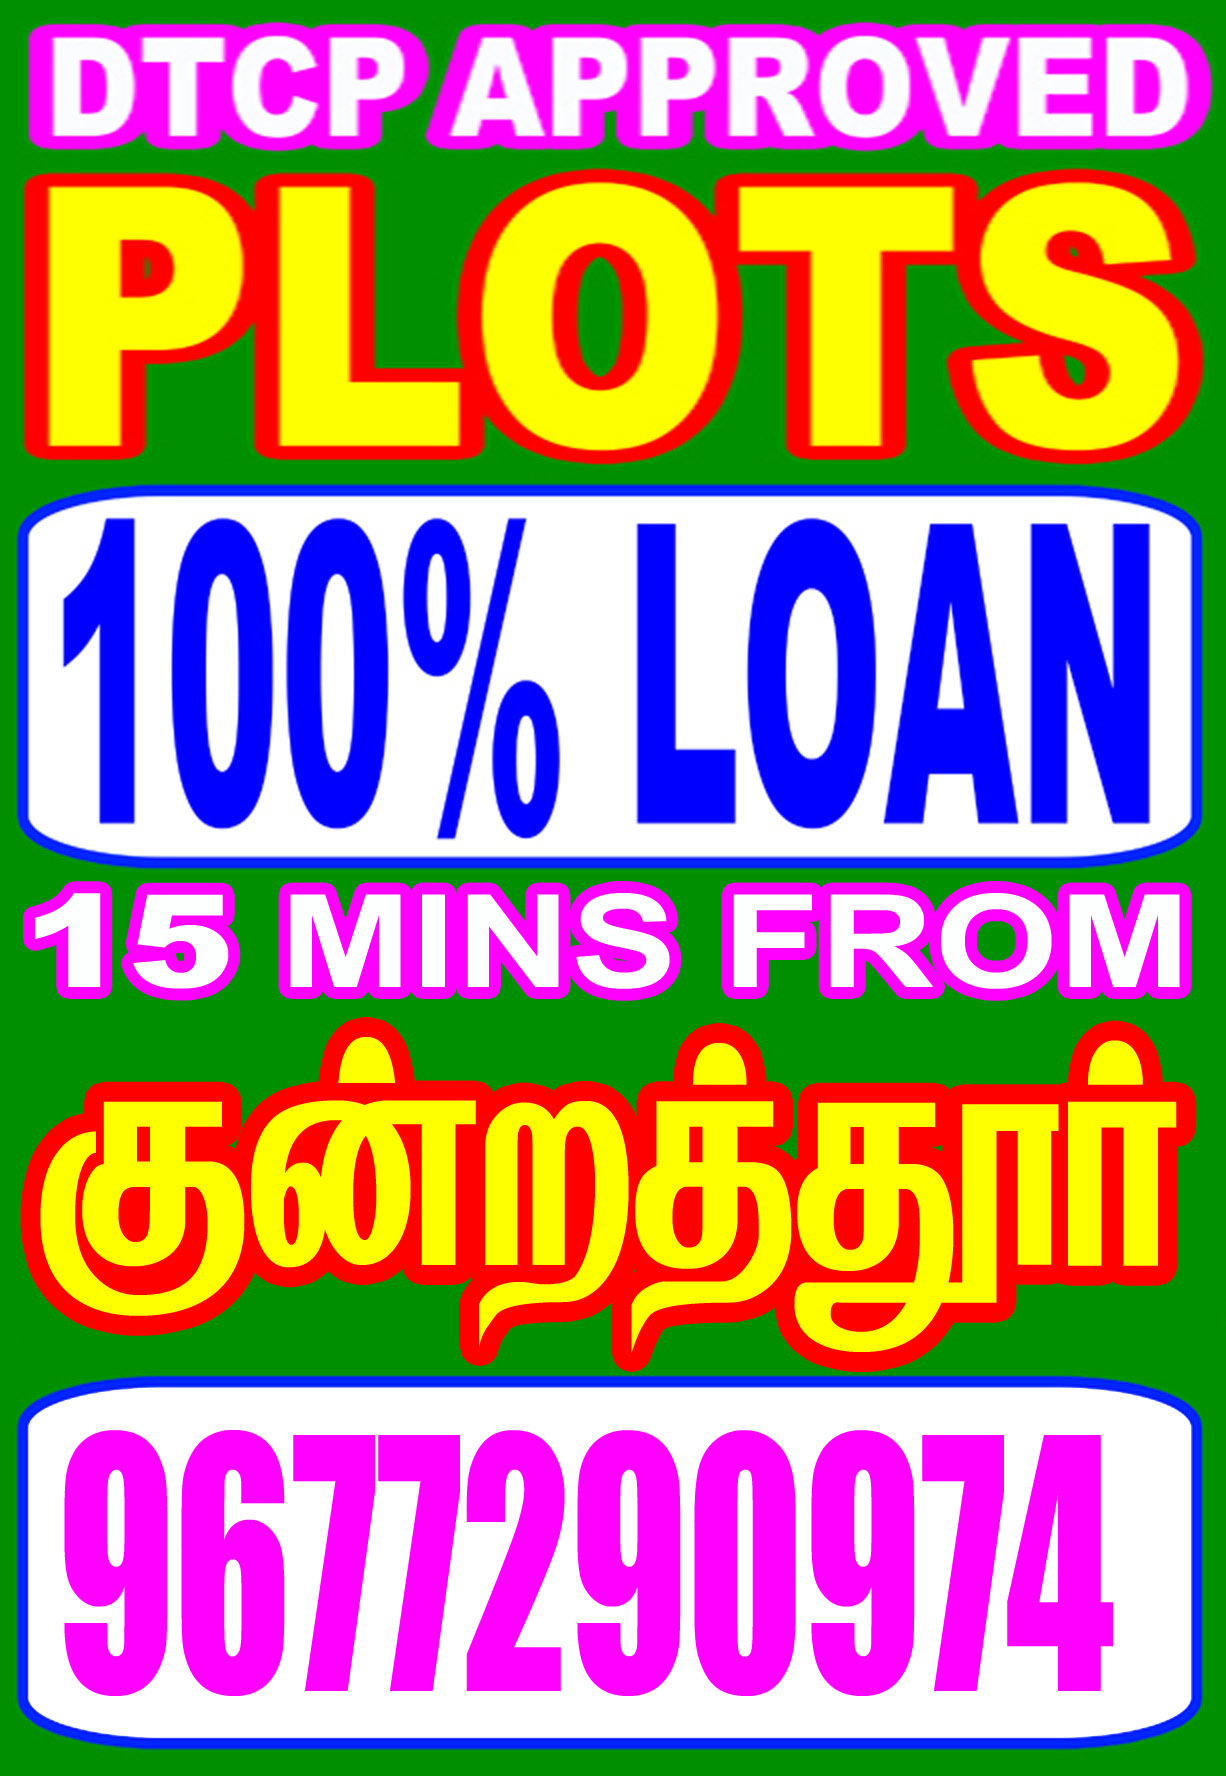 20 mins drive from poonamallee100% loan dtcp plots paris